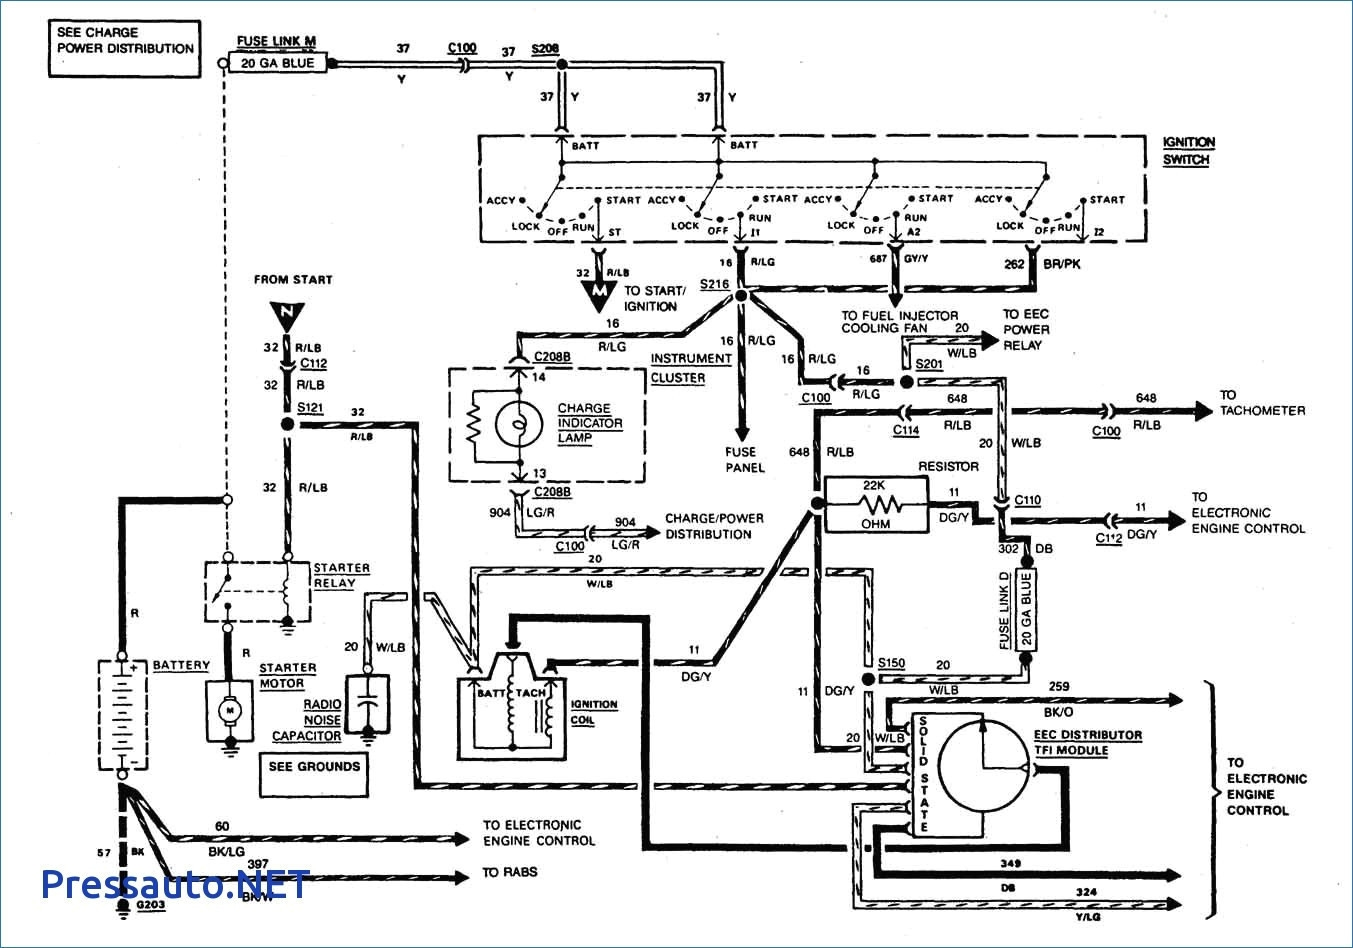 1989 ford f150 ignition wiring diagram | free wiring diagram wiring diagram for 1979 ford f150 4wd ignition wiring diagram for 1979 ford f100